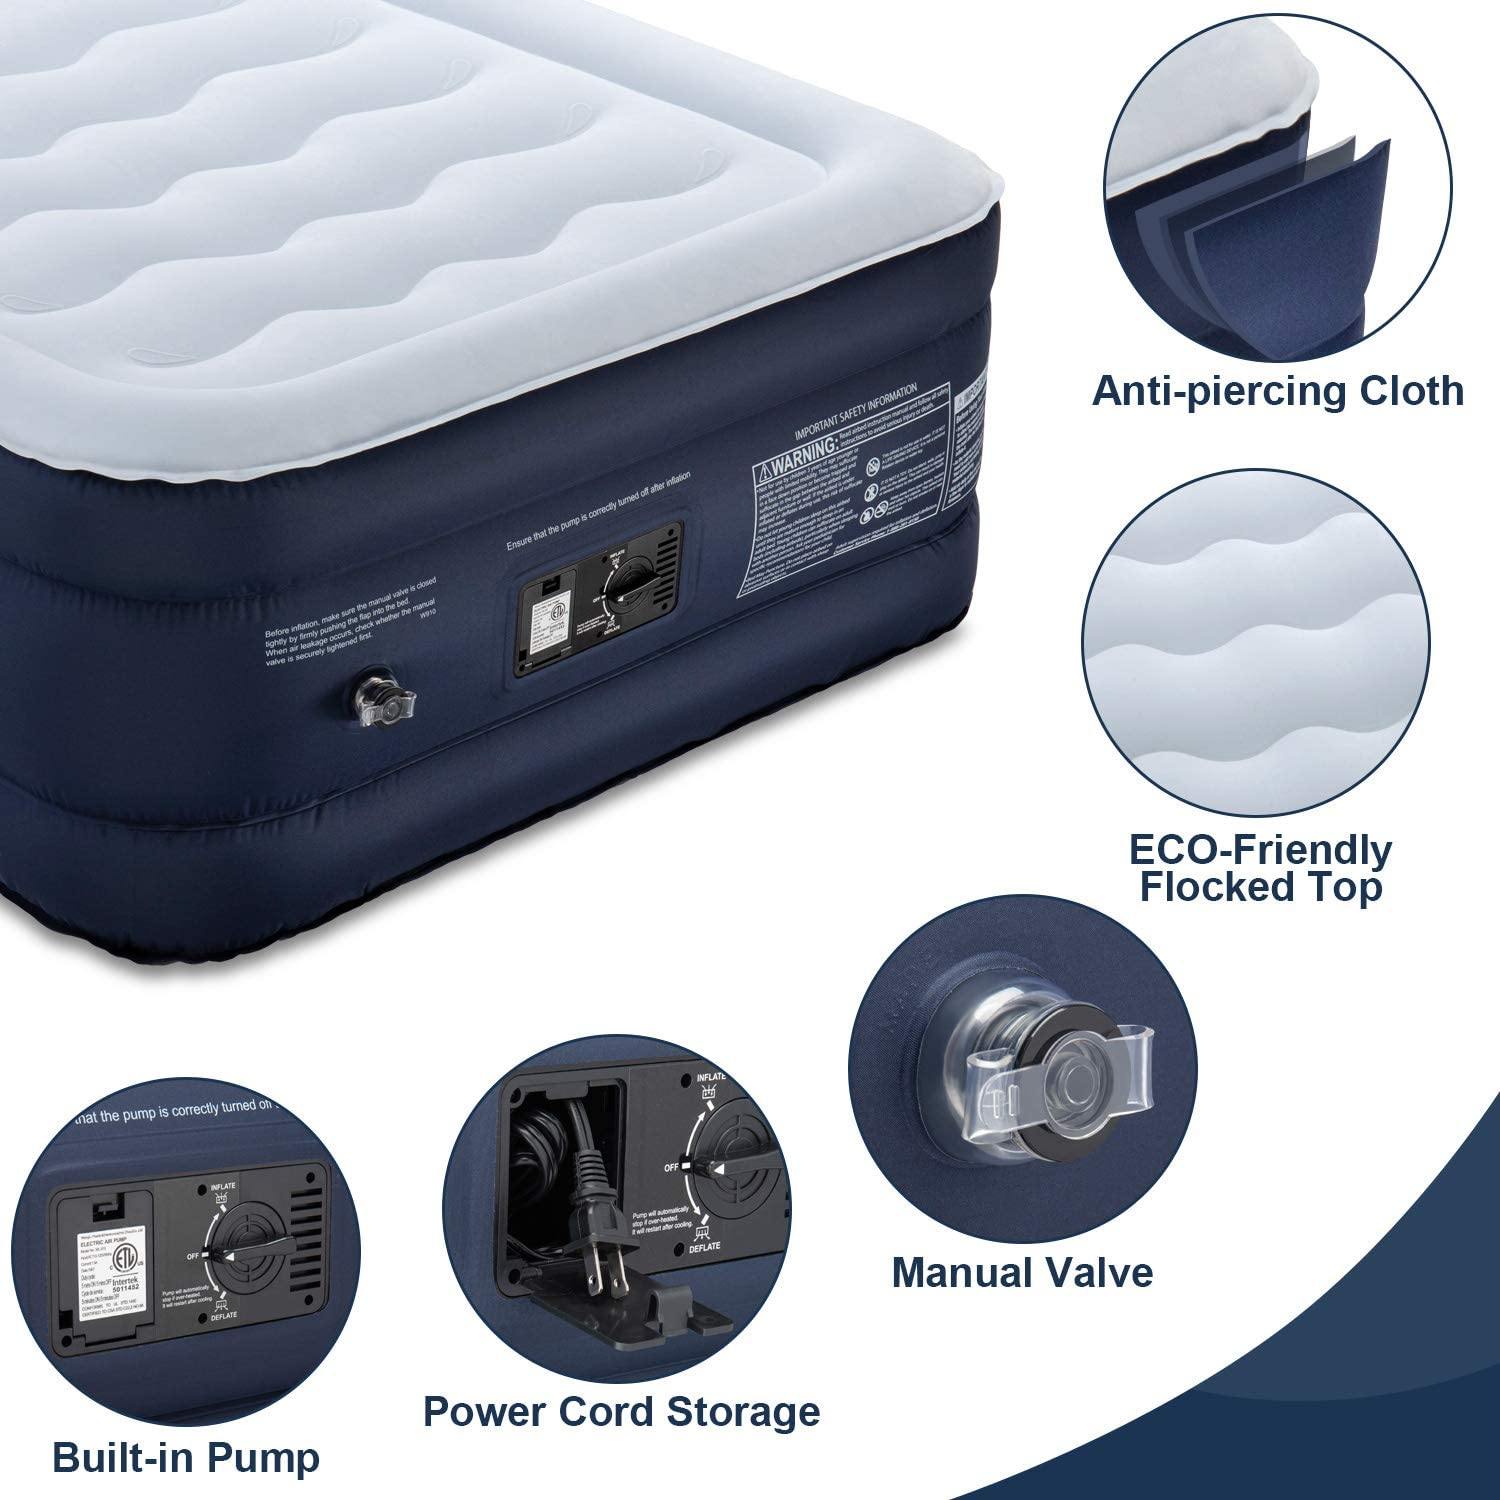 OlarHike Telsony Twin Air Mattress with Built-in Pump Puncture-Resistant Blow up Inflatable Mattress with Comfort Flocked Top Travel-78x40x18inches 18 High Airbed for Guests Camping